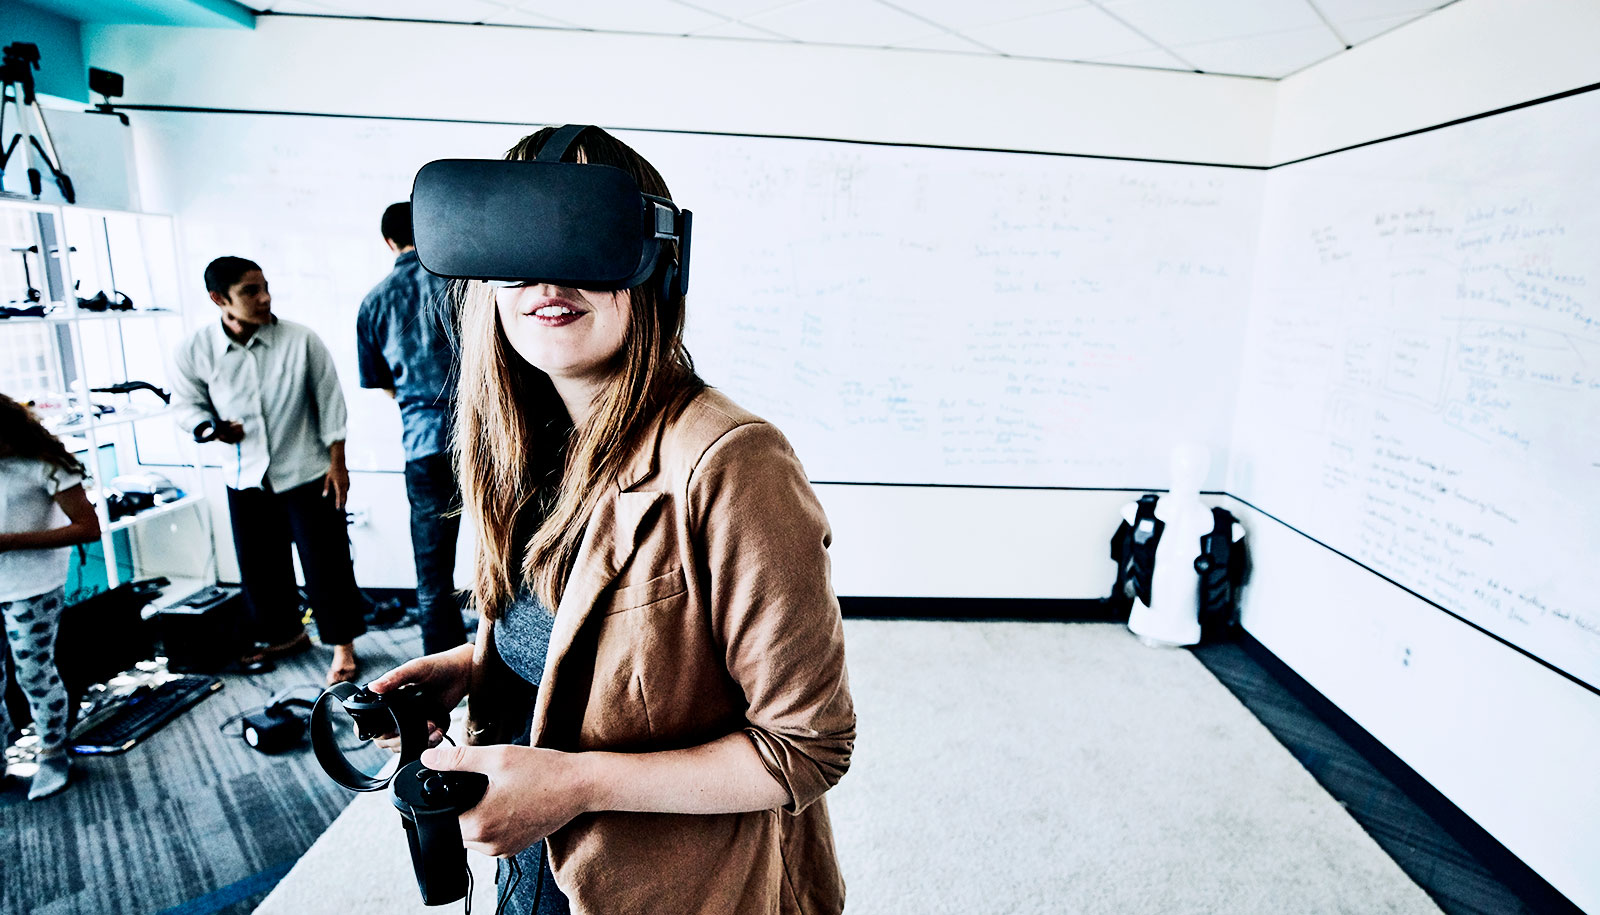 'Holodeck' project brings VR and augmented reality together - Futurity